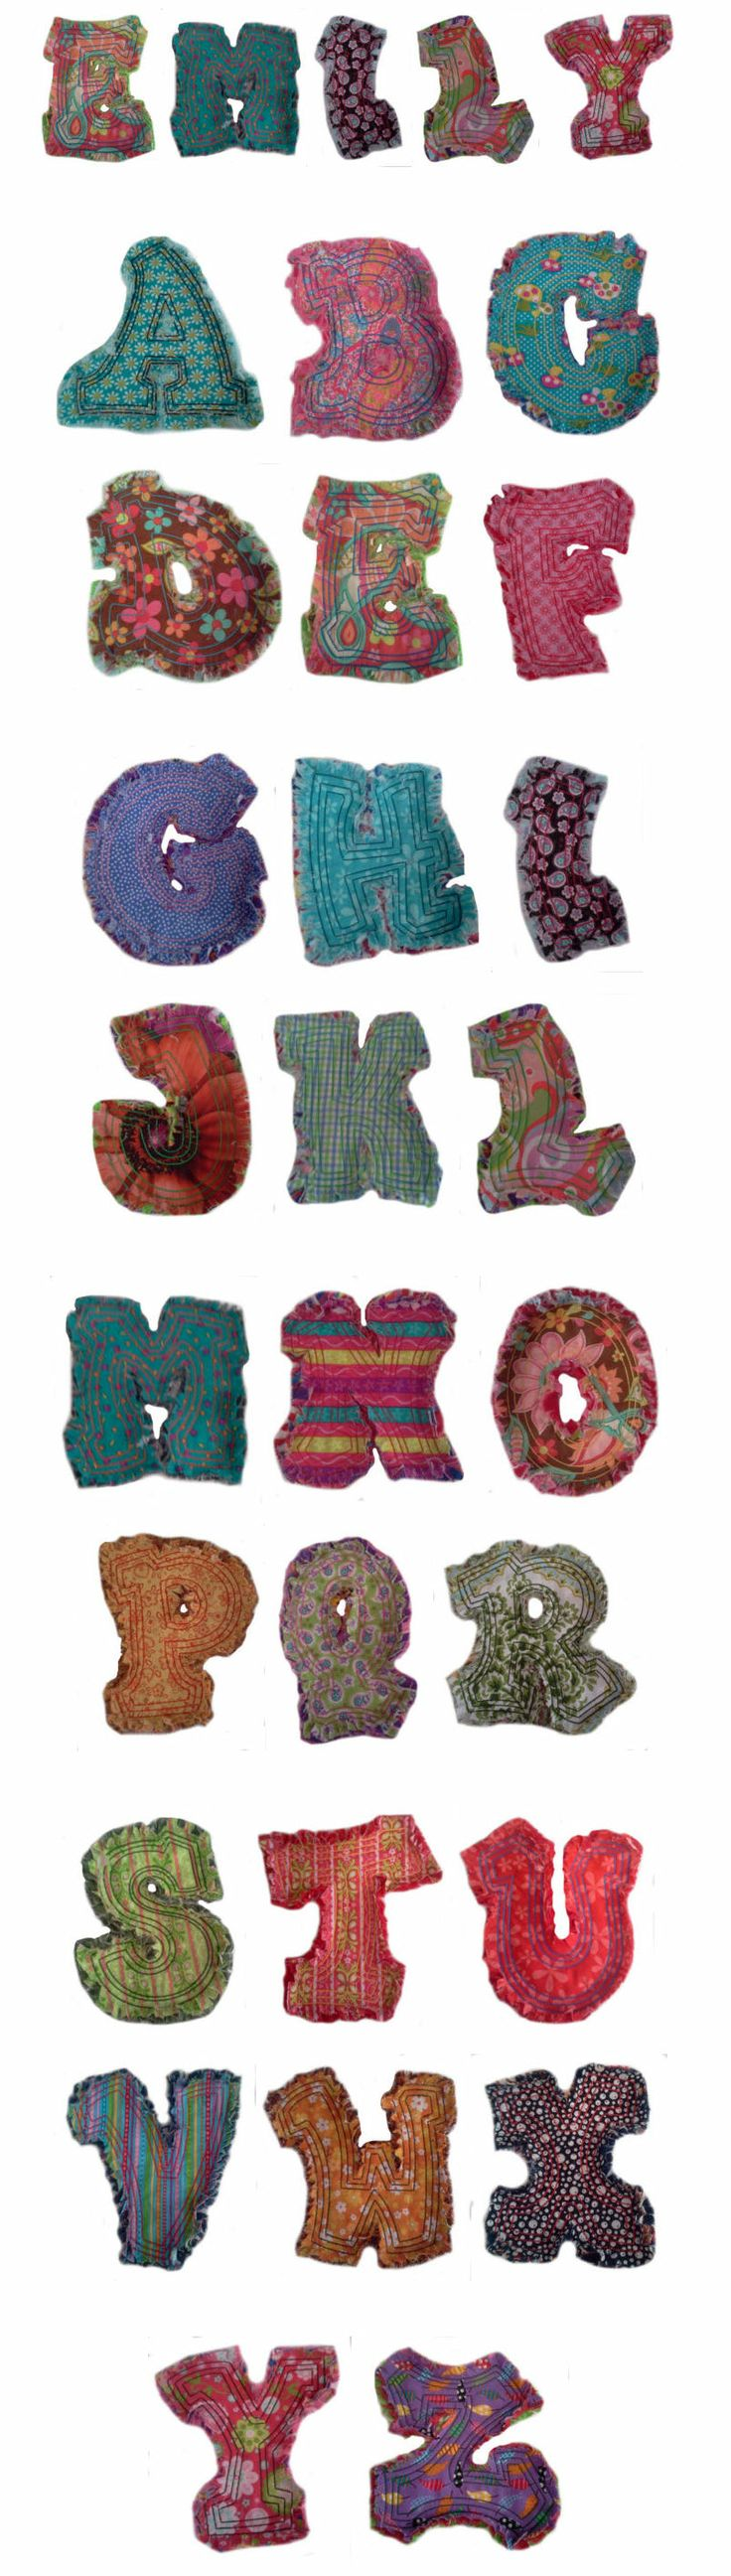 Embroidery | Free Machine Embroidery Designs | Raggedy Applique Alphabet